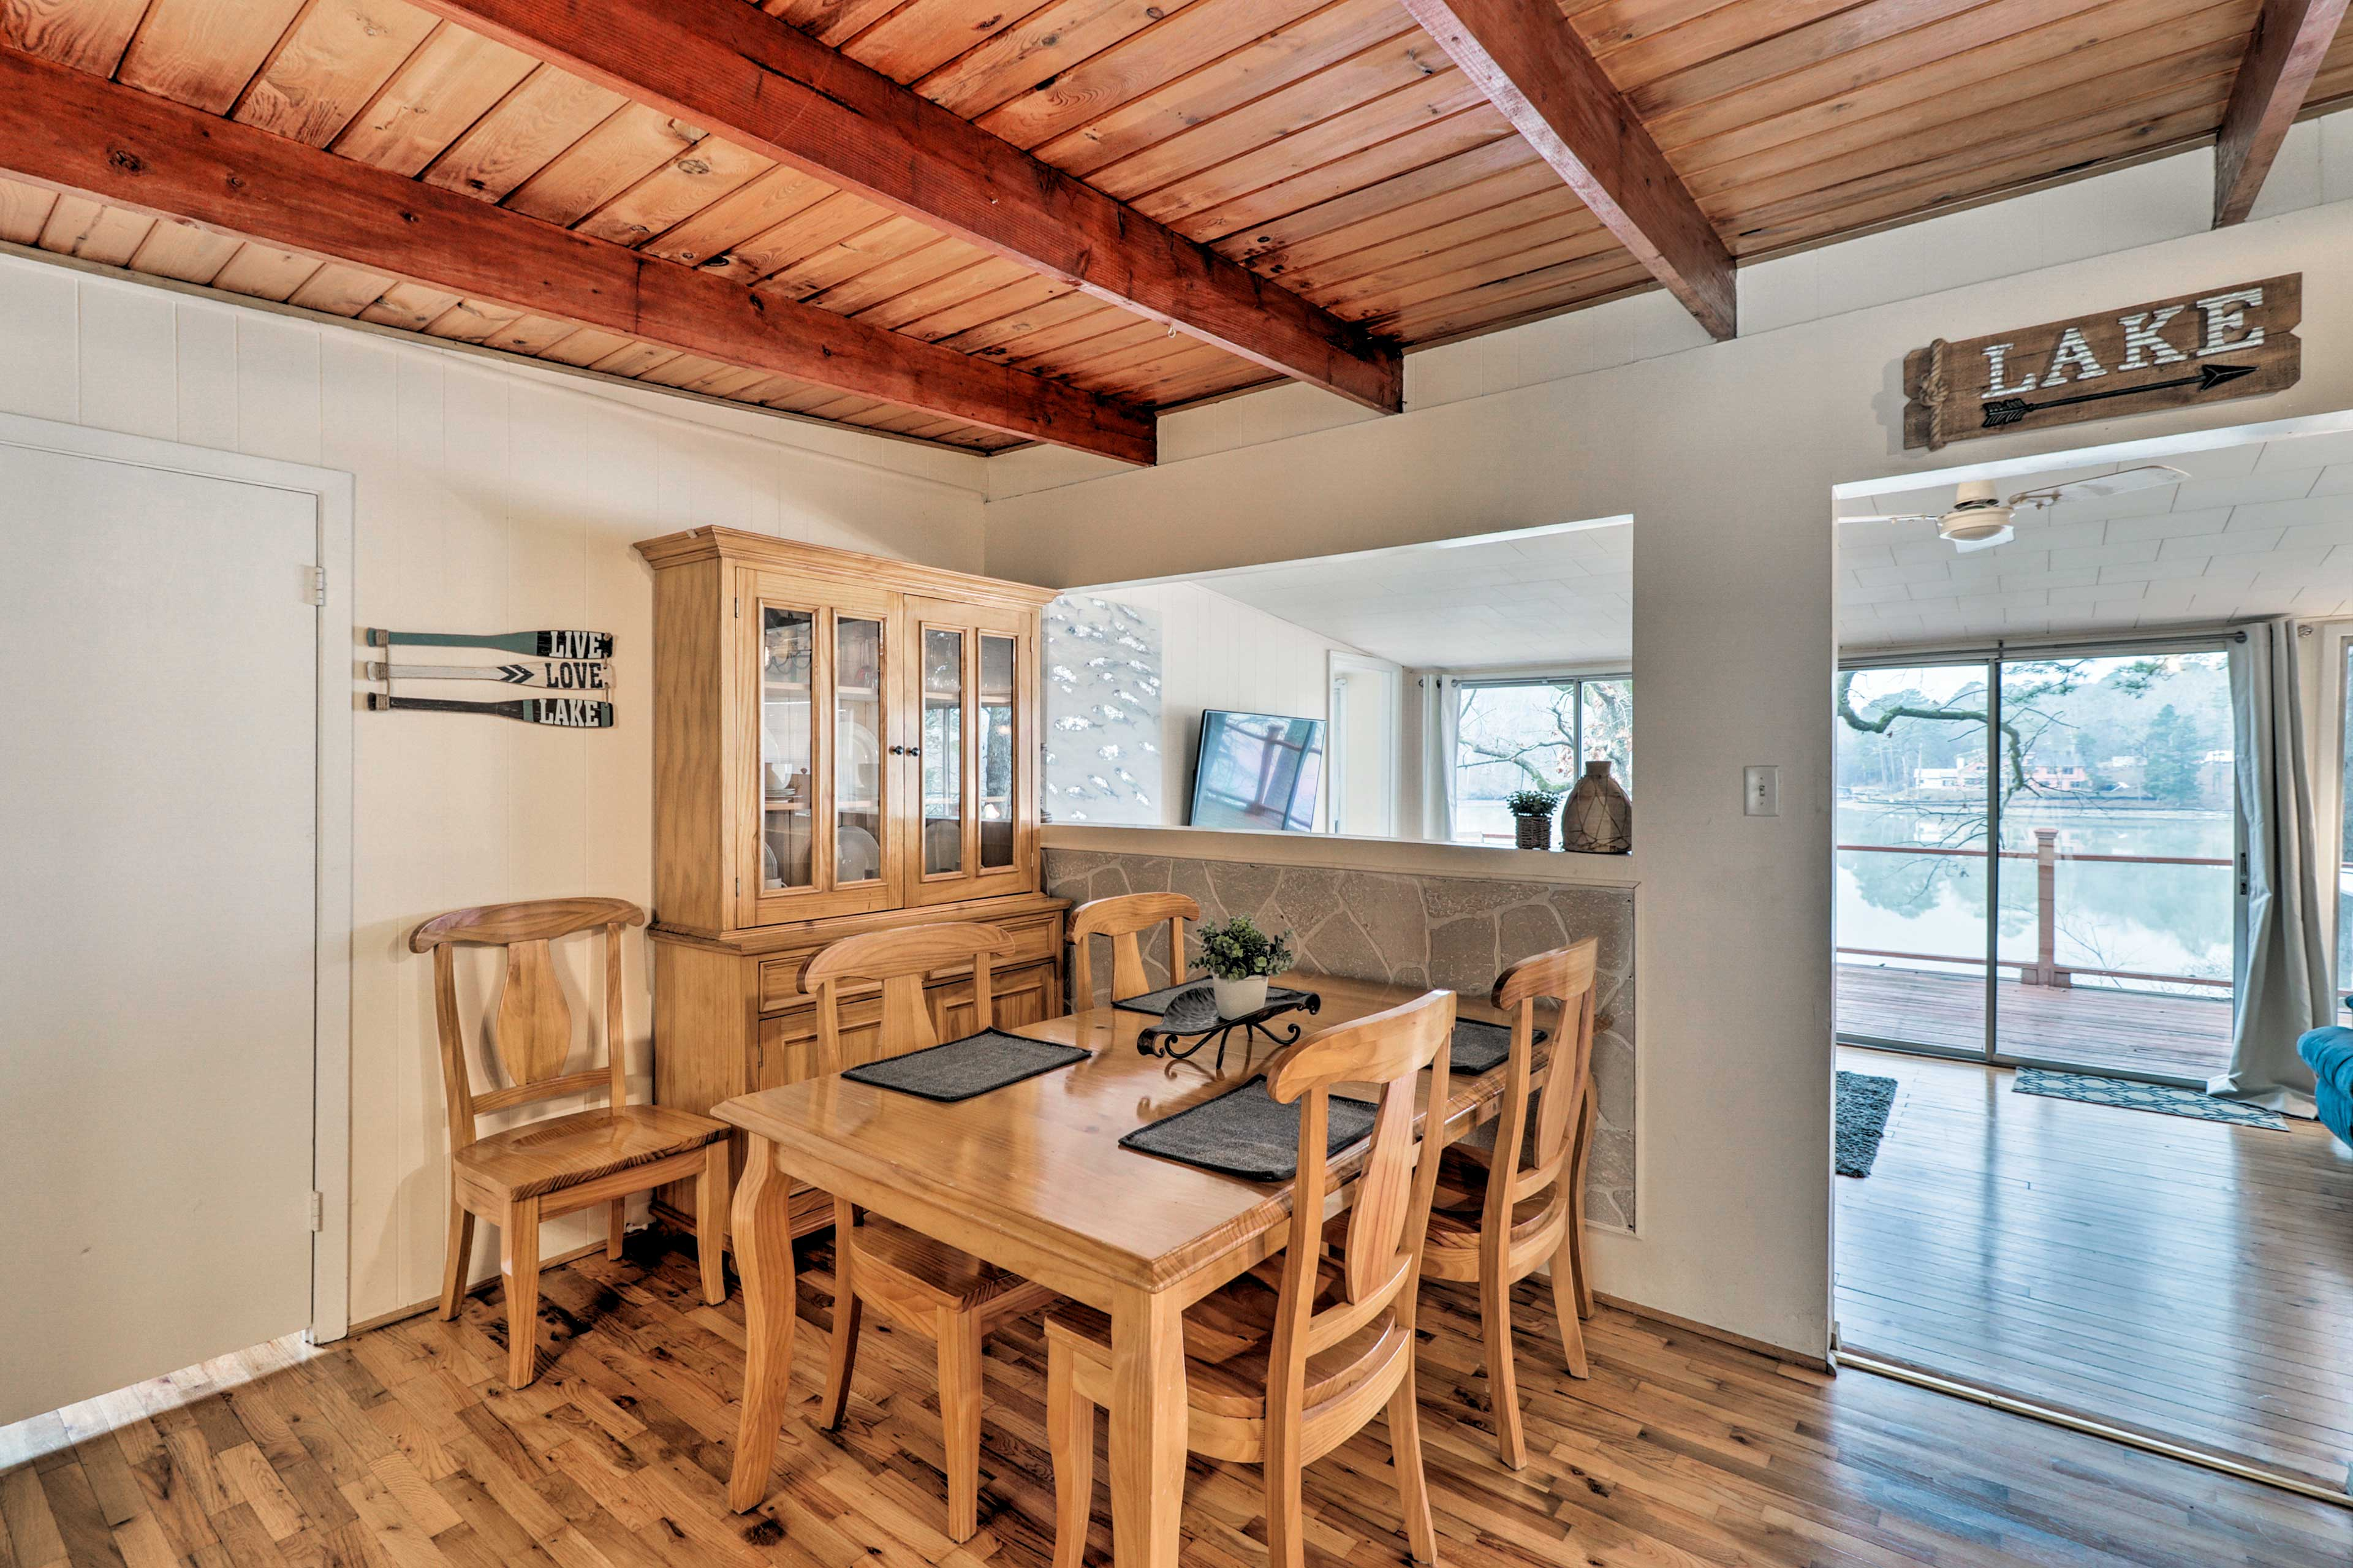 This newly renovated house has hardwood floors and unique wooden ceilings!